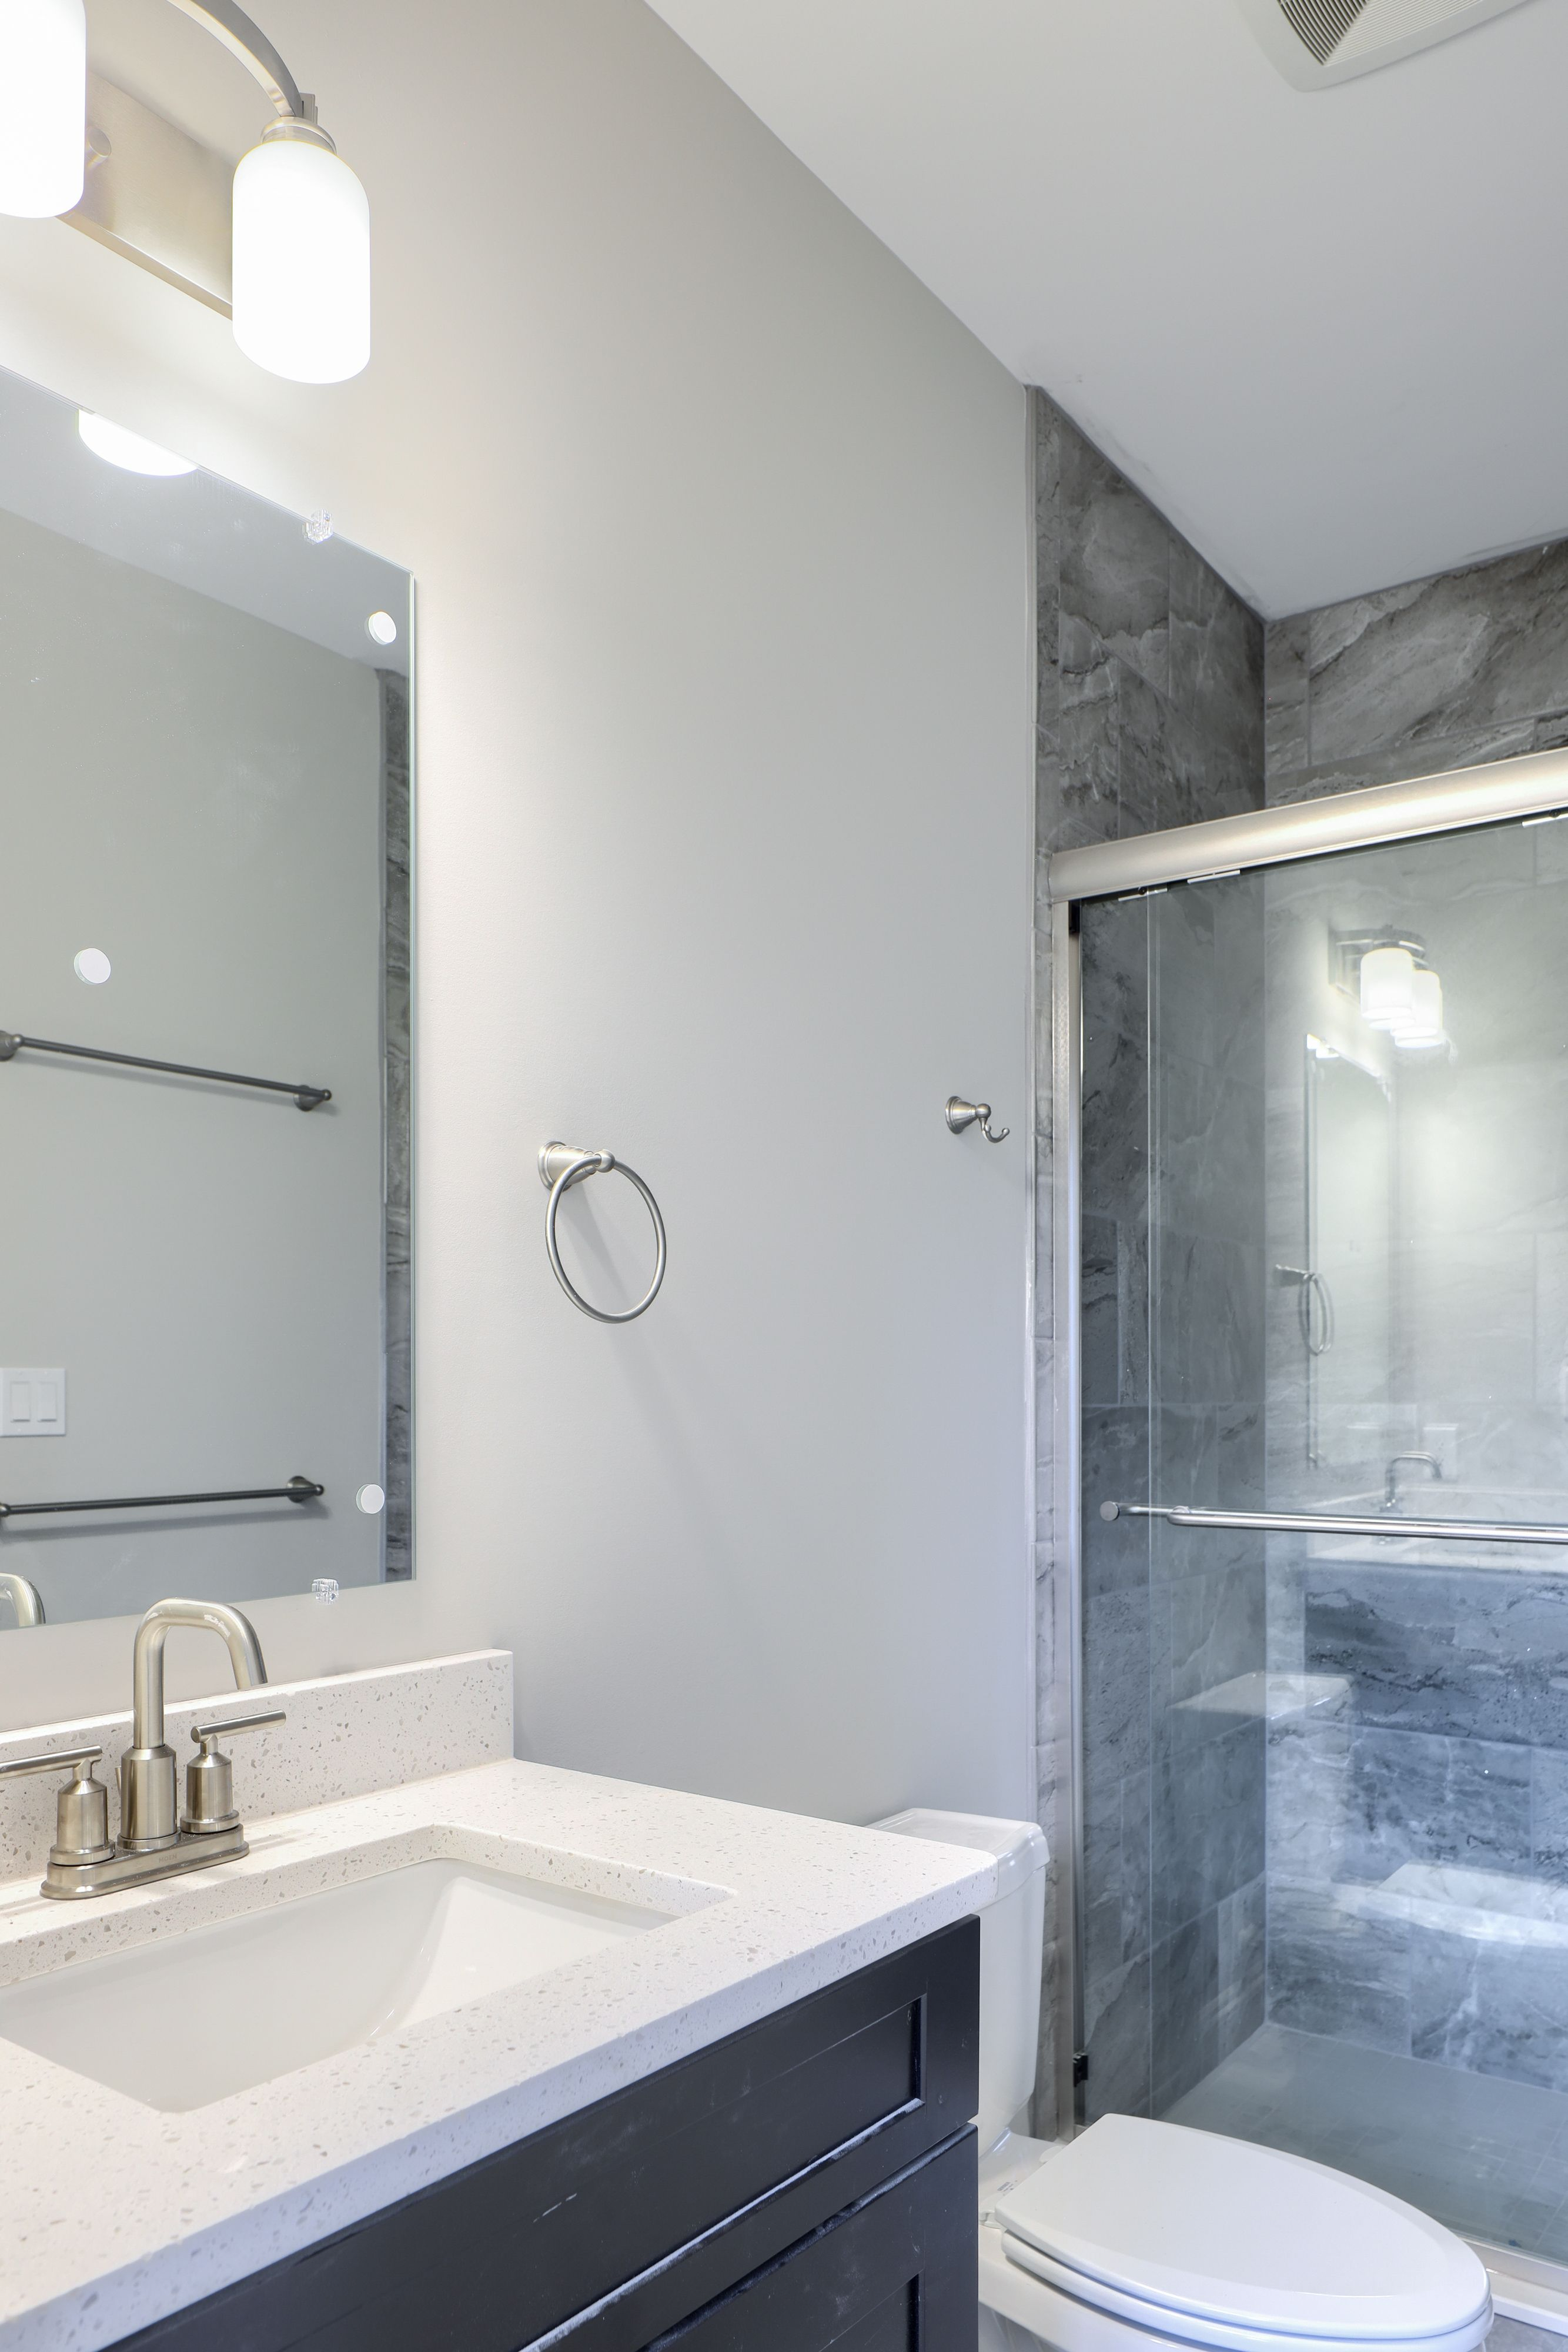 Bathroom featured in the Samson Heritage By Keystone Custom Homes in Baltimore, MD